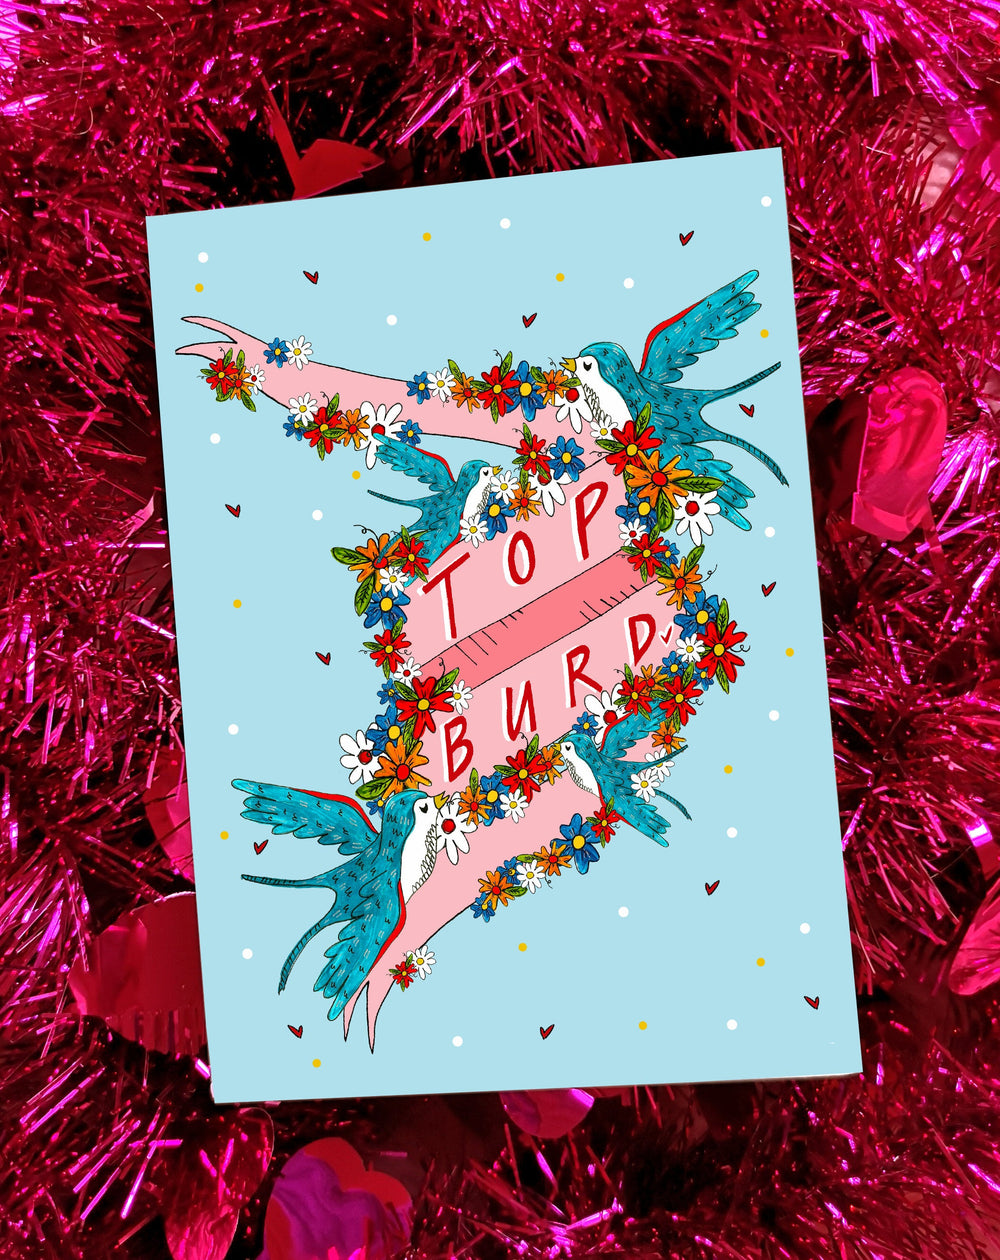 TOP BURD! Greetings Card